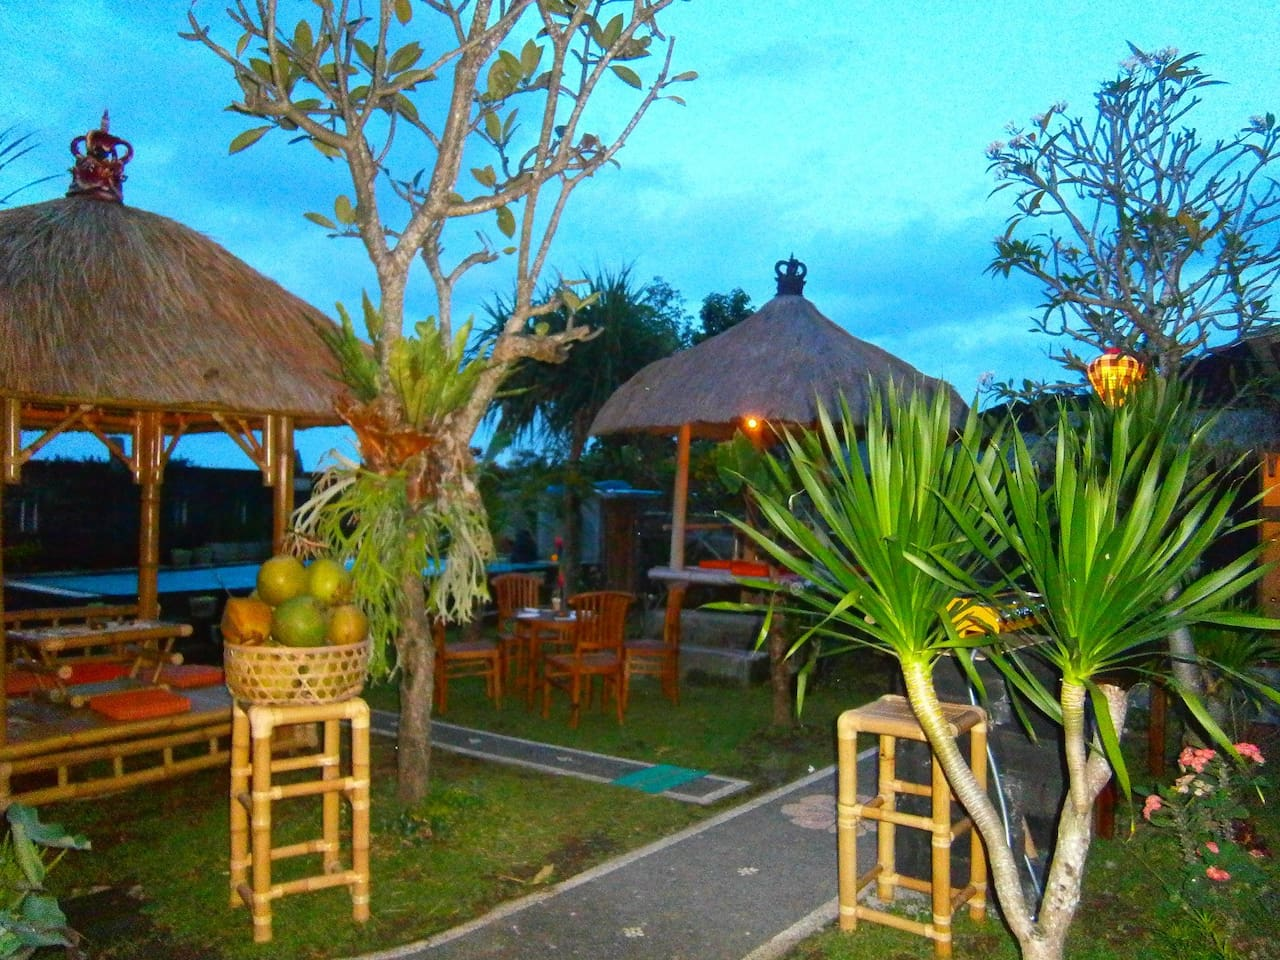 Sunset at the Djoyo Bed & Breakfast